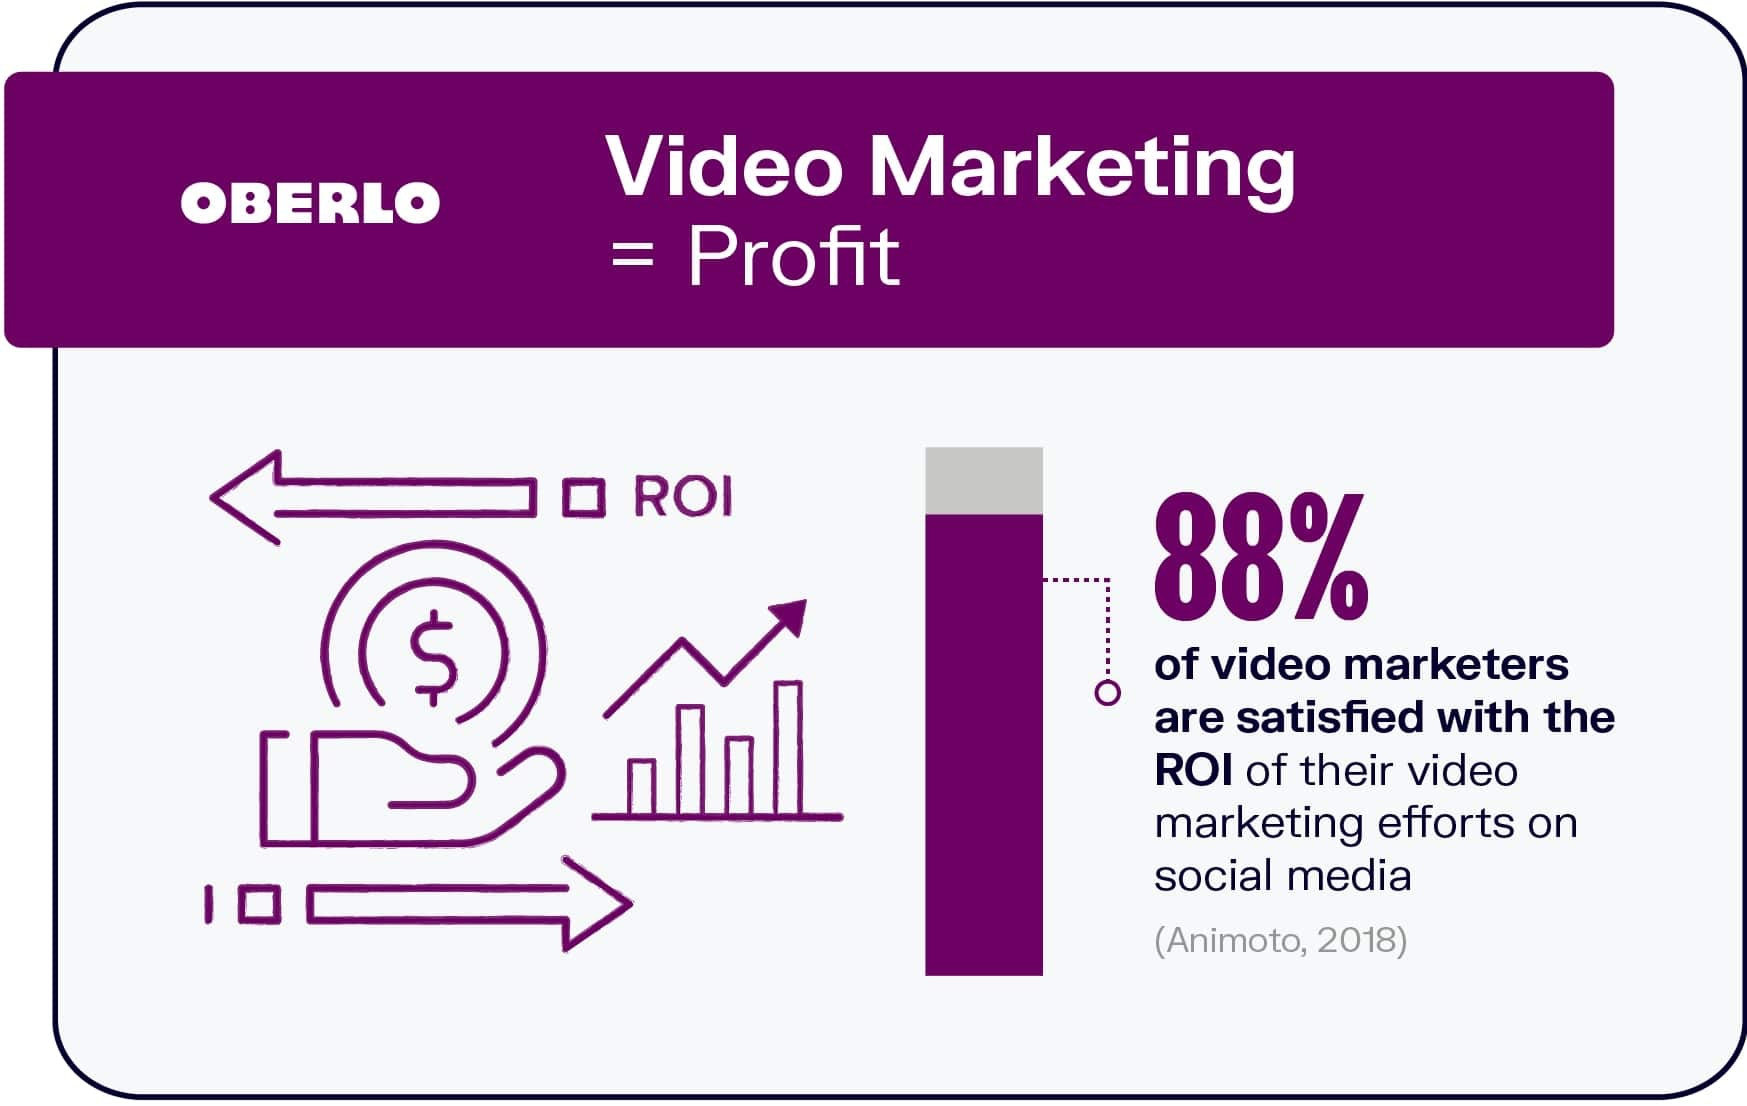 Video Marketing = Profit